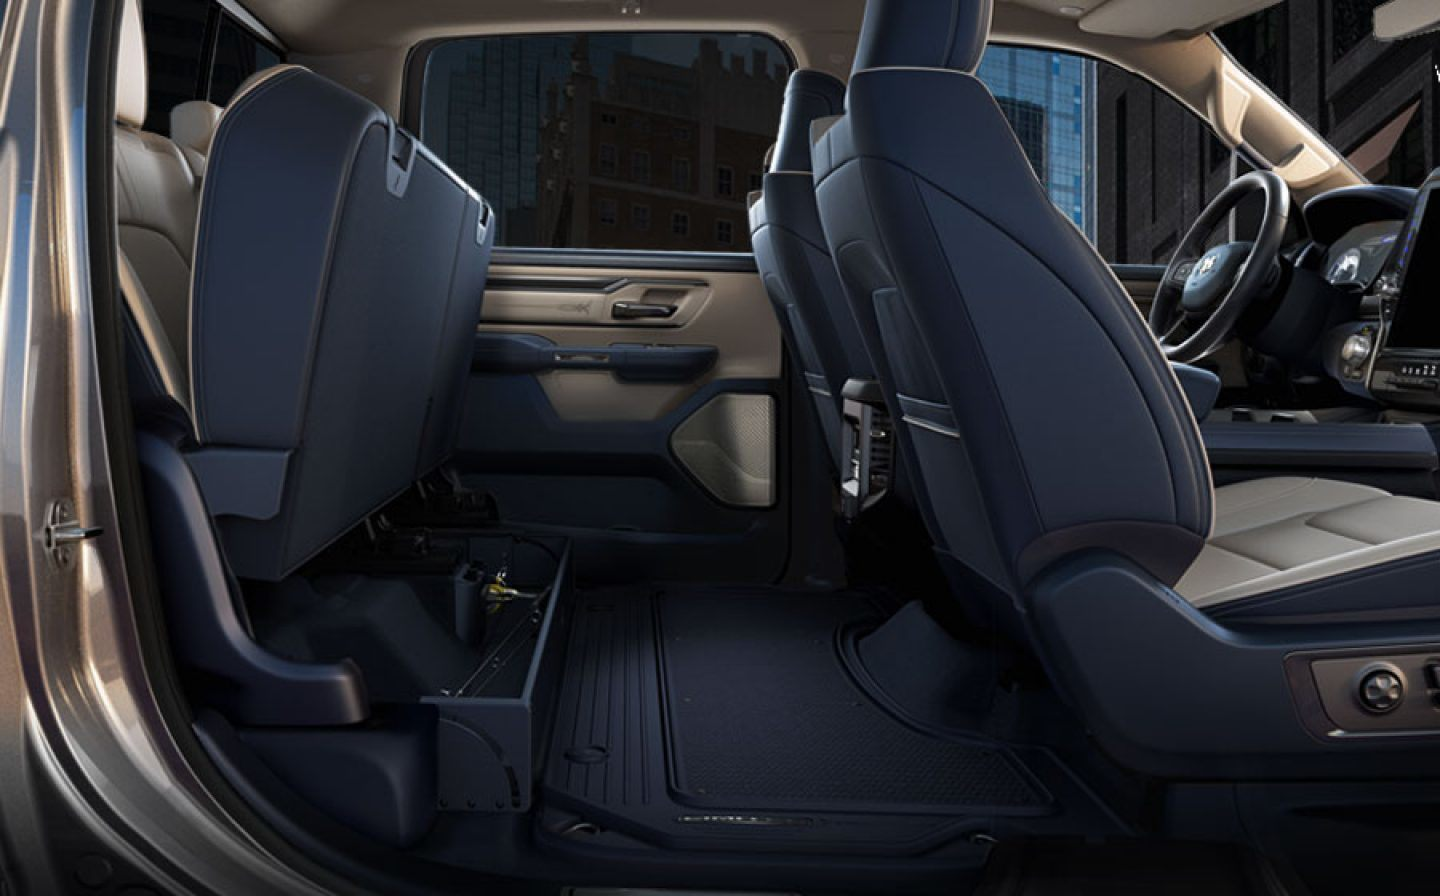 Ram Interior Storage Feature Underseat L Jpg Image on Lifted Dodge Dually